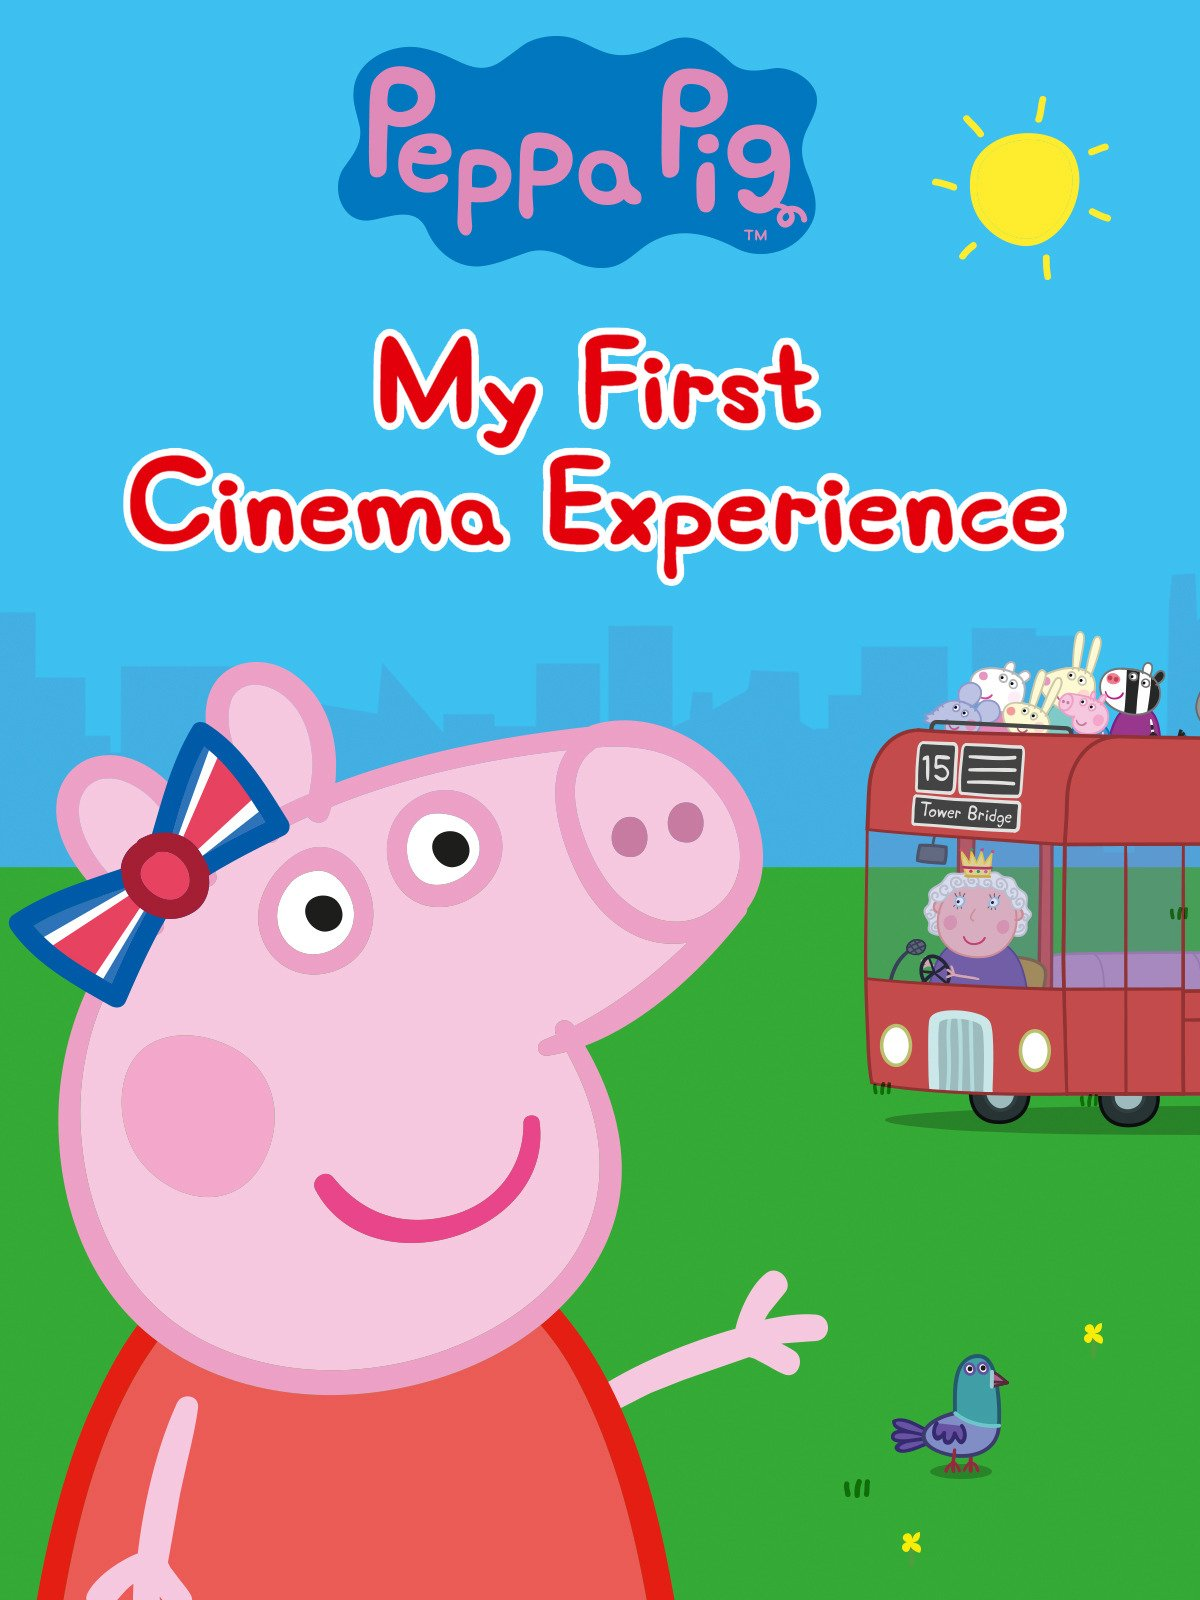 Amazon co uk: Watch Peppa Pig: My First Cinema Experience | Prime Video